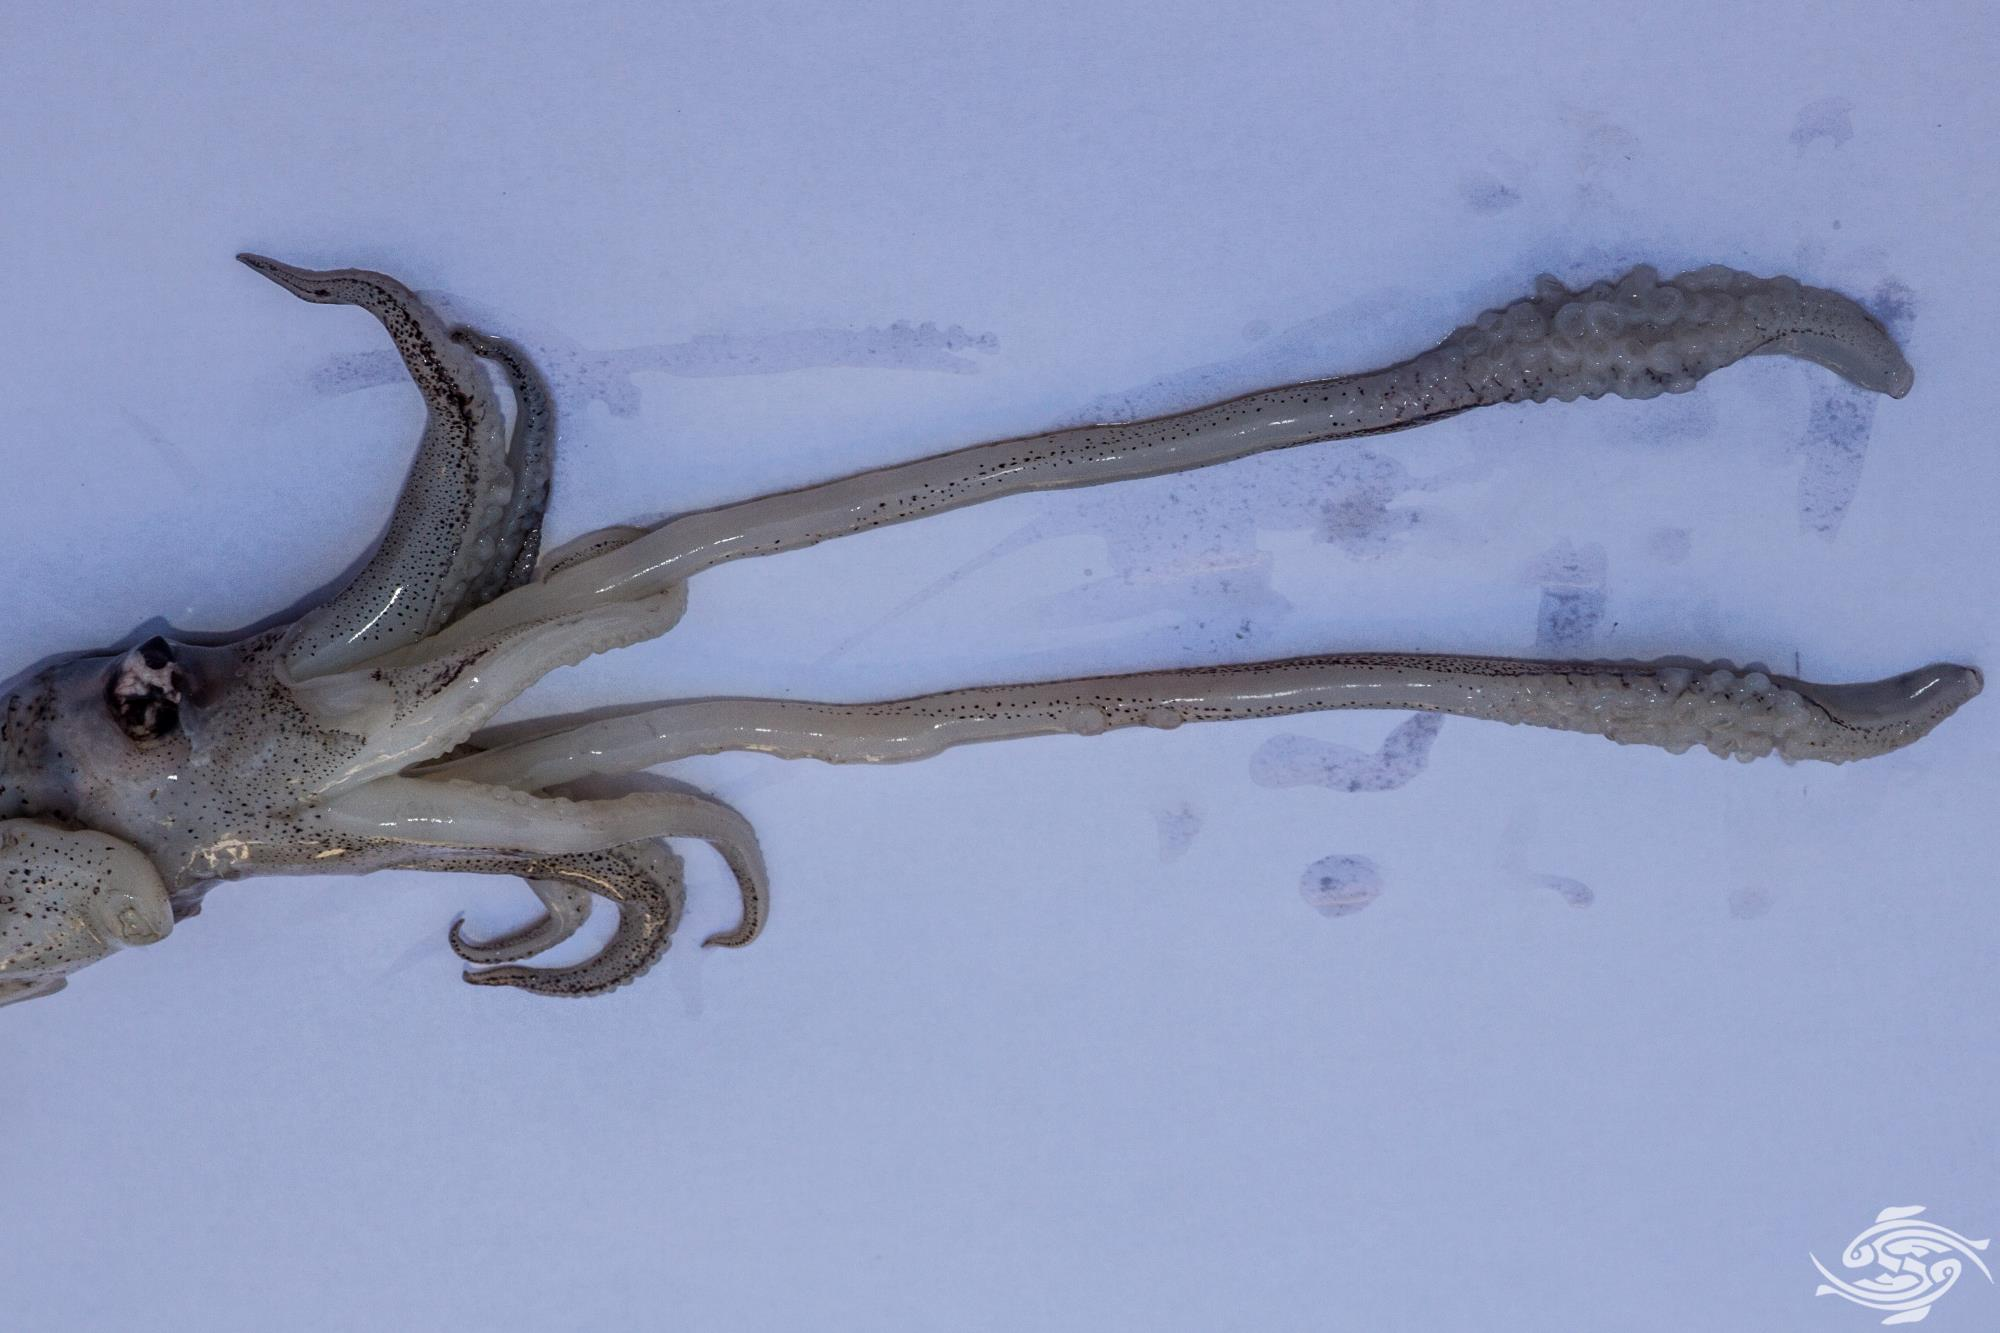 The tentacles used to capture prey can be clearly seen in this image. Note the large numbers of suckers on the end of the tentacle.